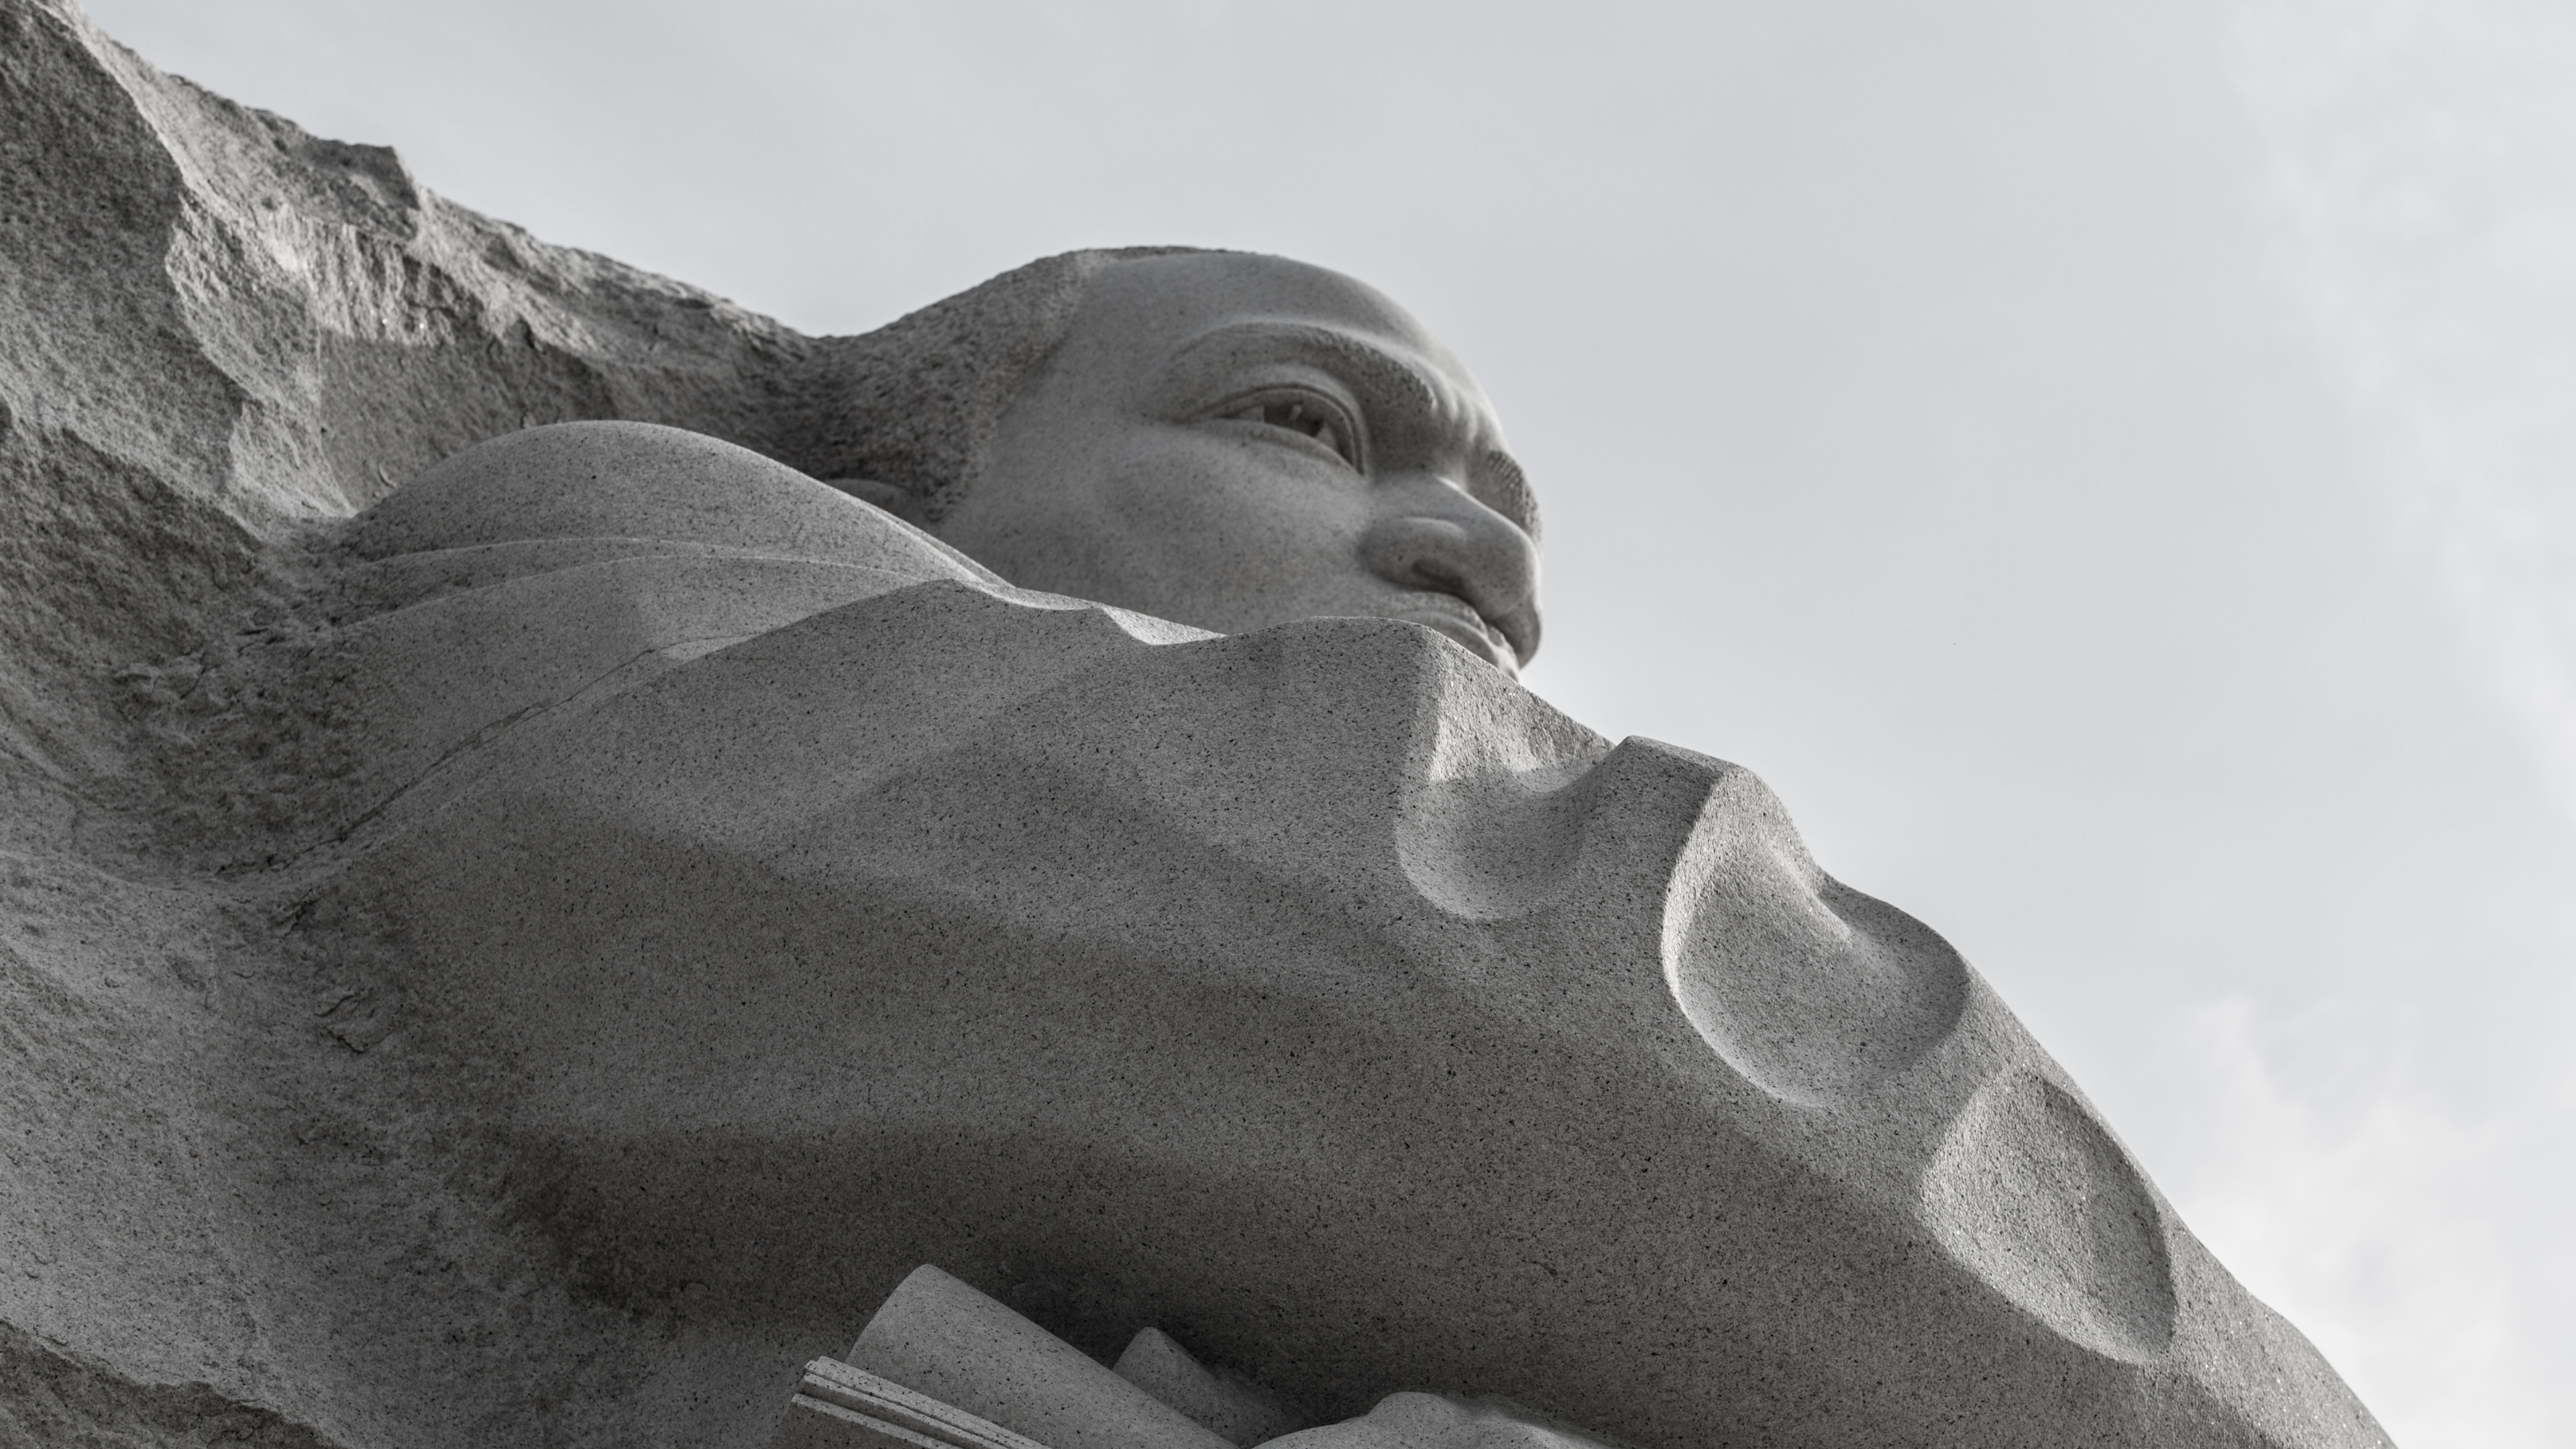 View up at the marble statue of Martin Luther King Junior